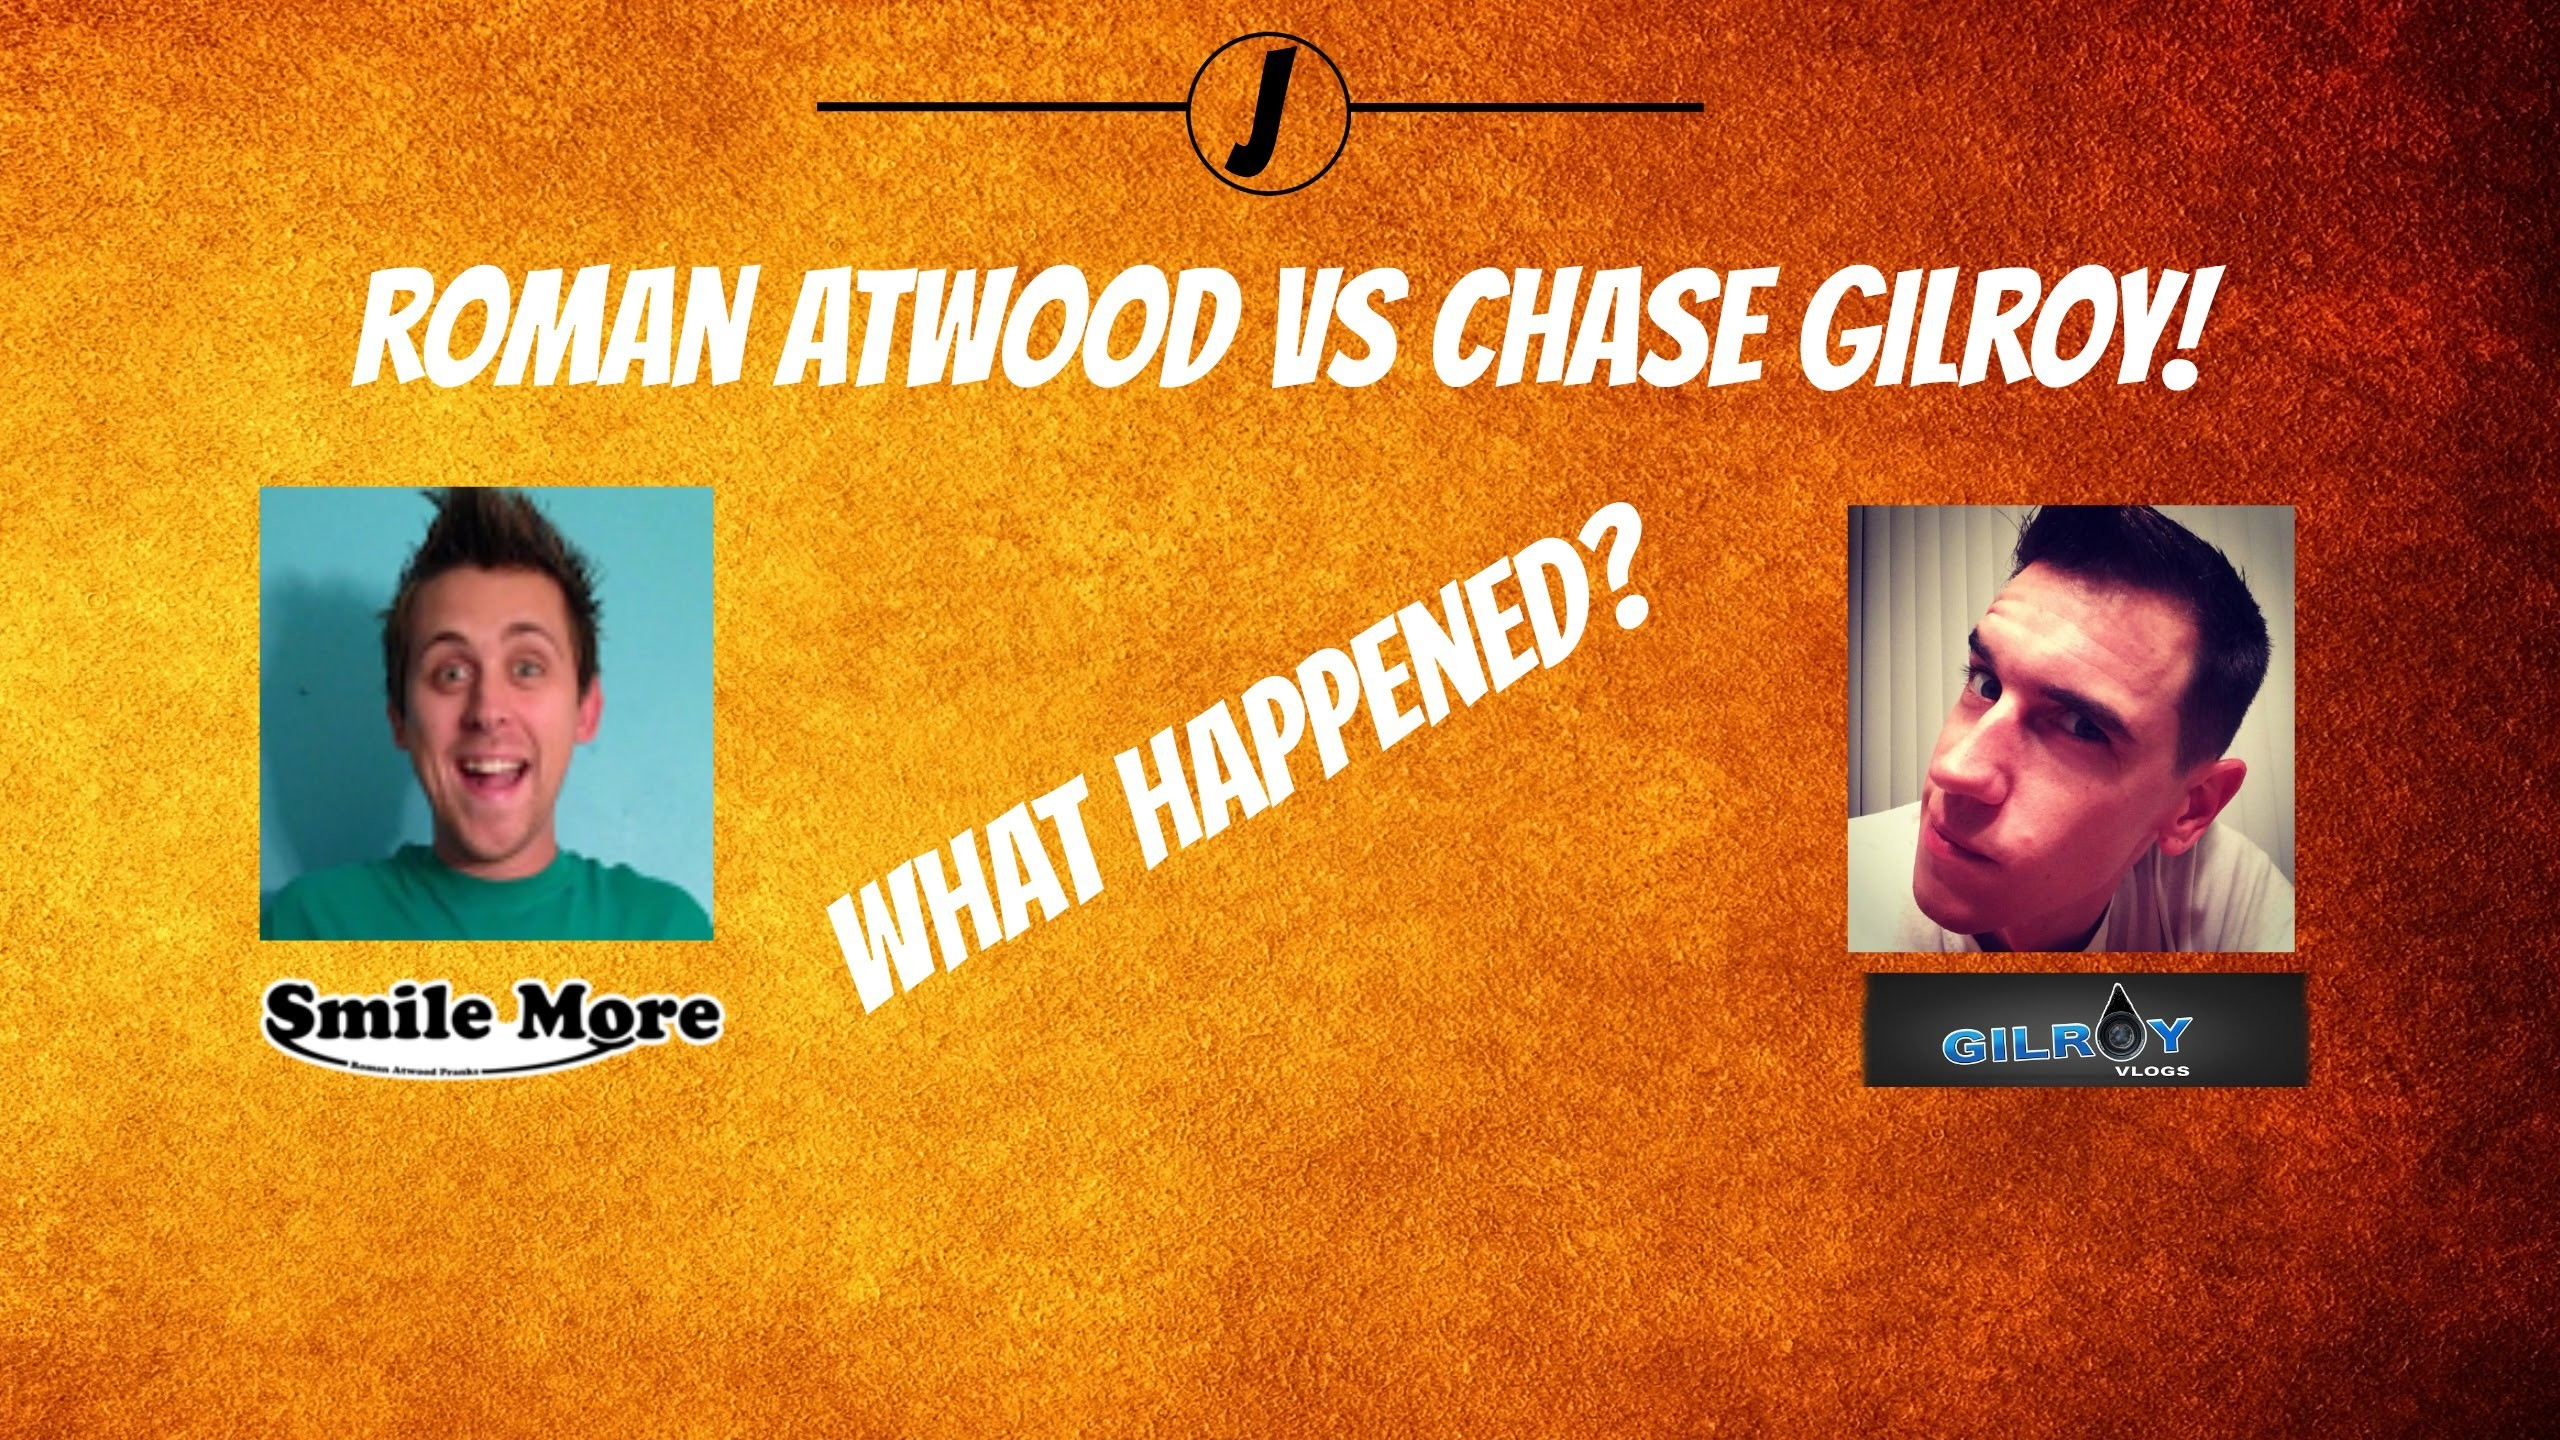 WHAT HAPPENED BETWEEN ROMAN ATWOOD AND CHASE GILROY? (CONSPIRACY) – YouTube